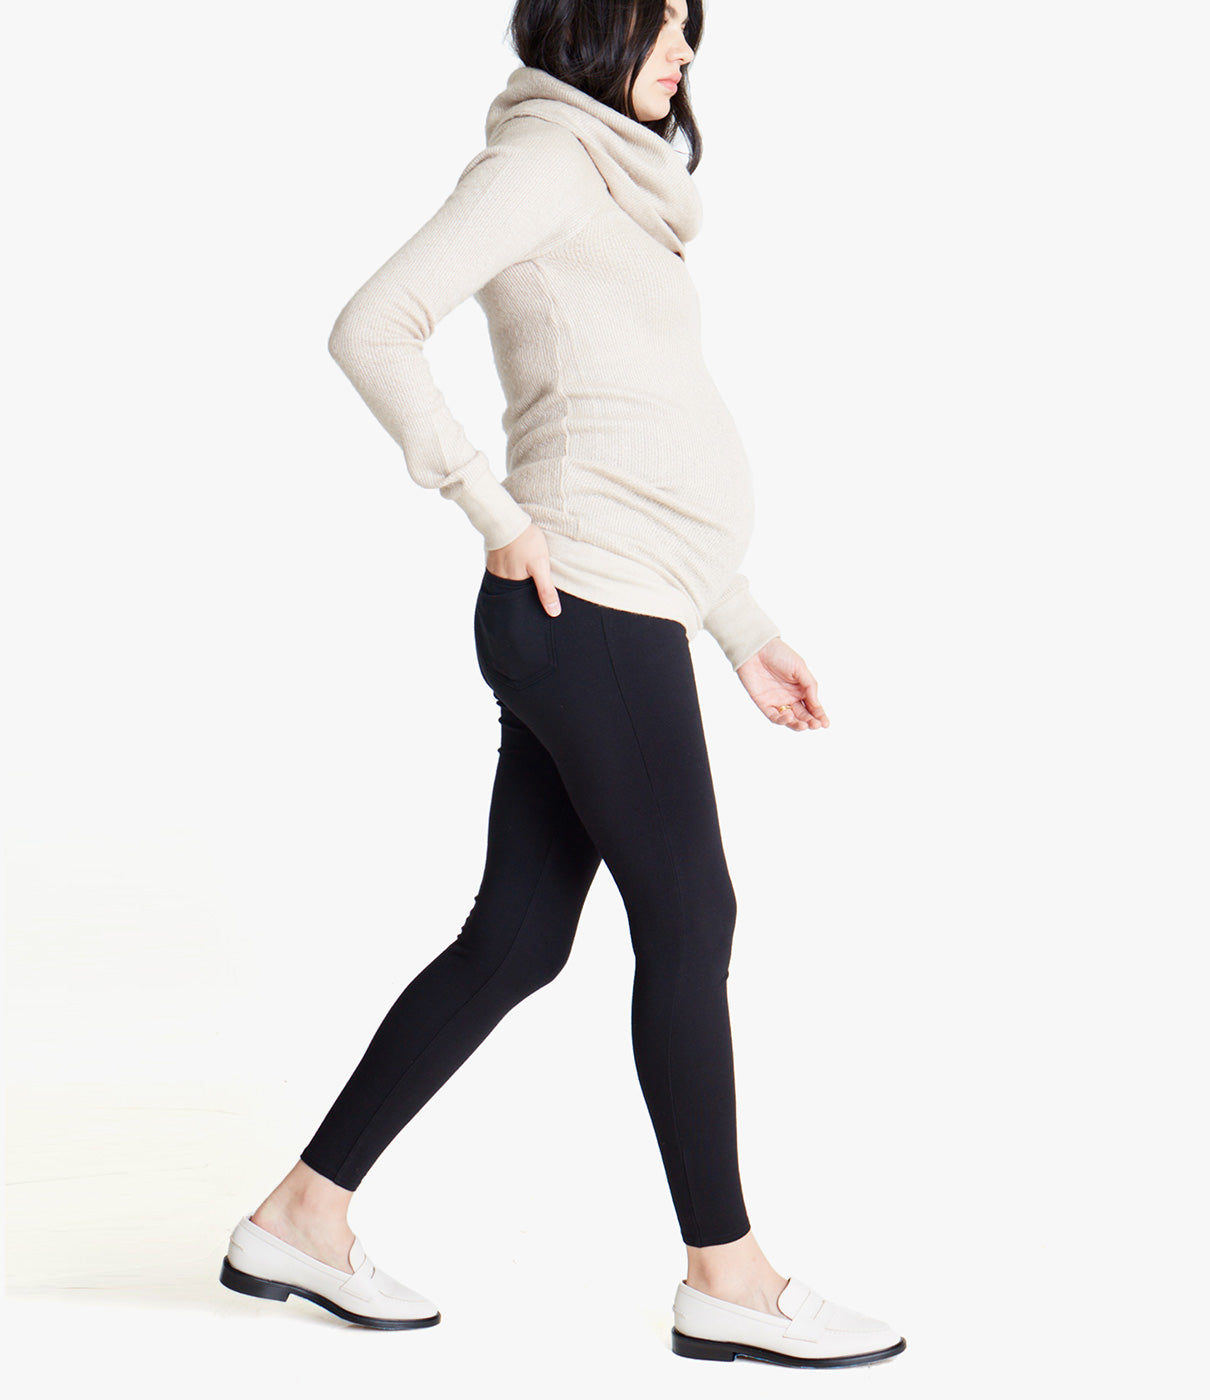 FASHION + FUNCTIONWith functional back pockets this pant is a great alternative to more casual maternity jeans and traditional leggings.